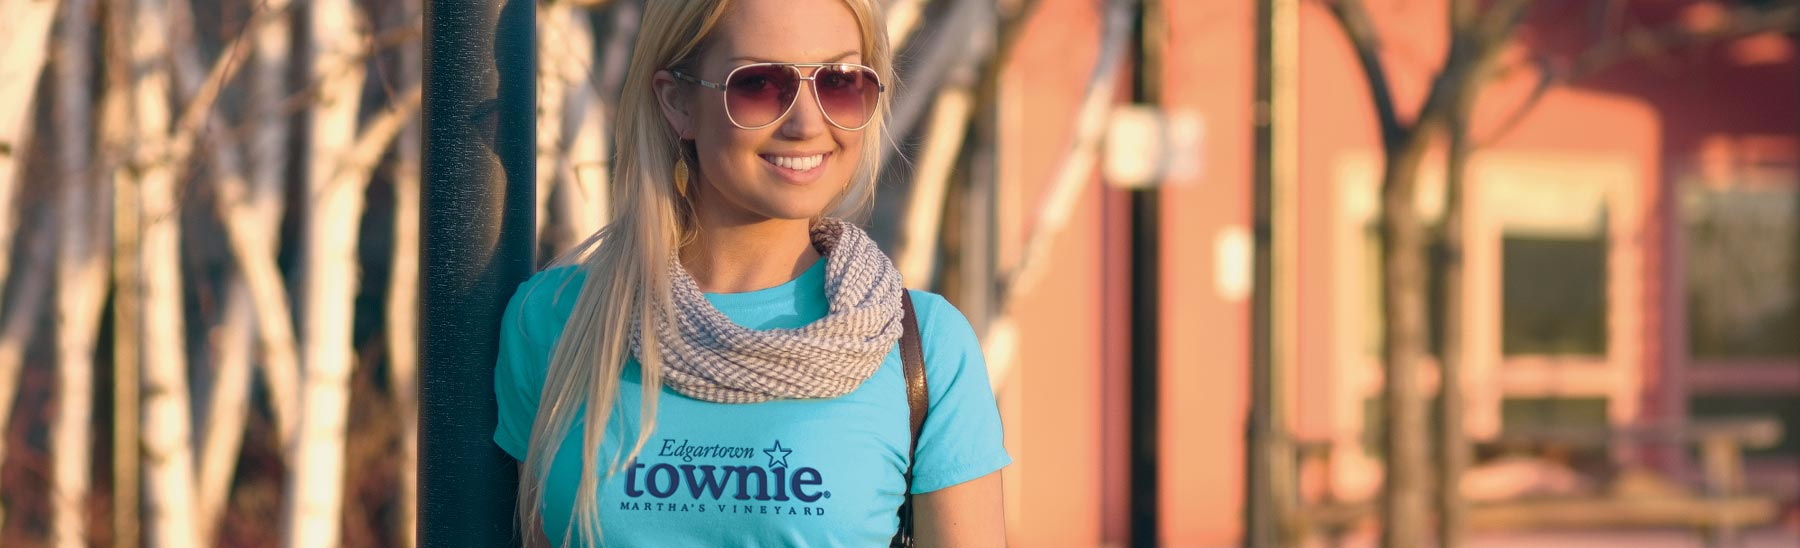 Townie® Originals Line | Custom Clothing